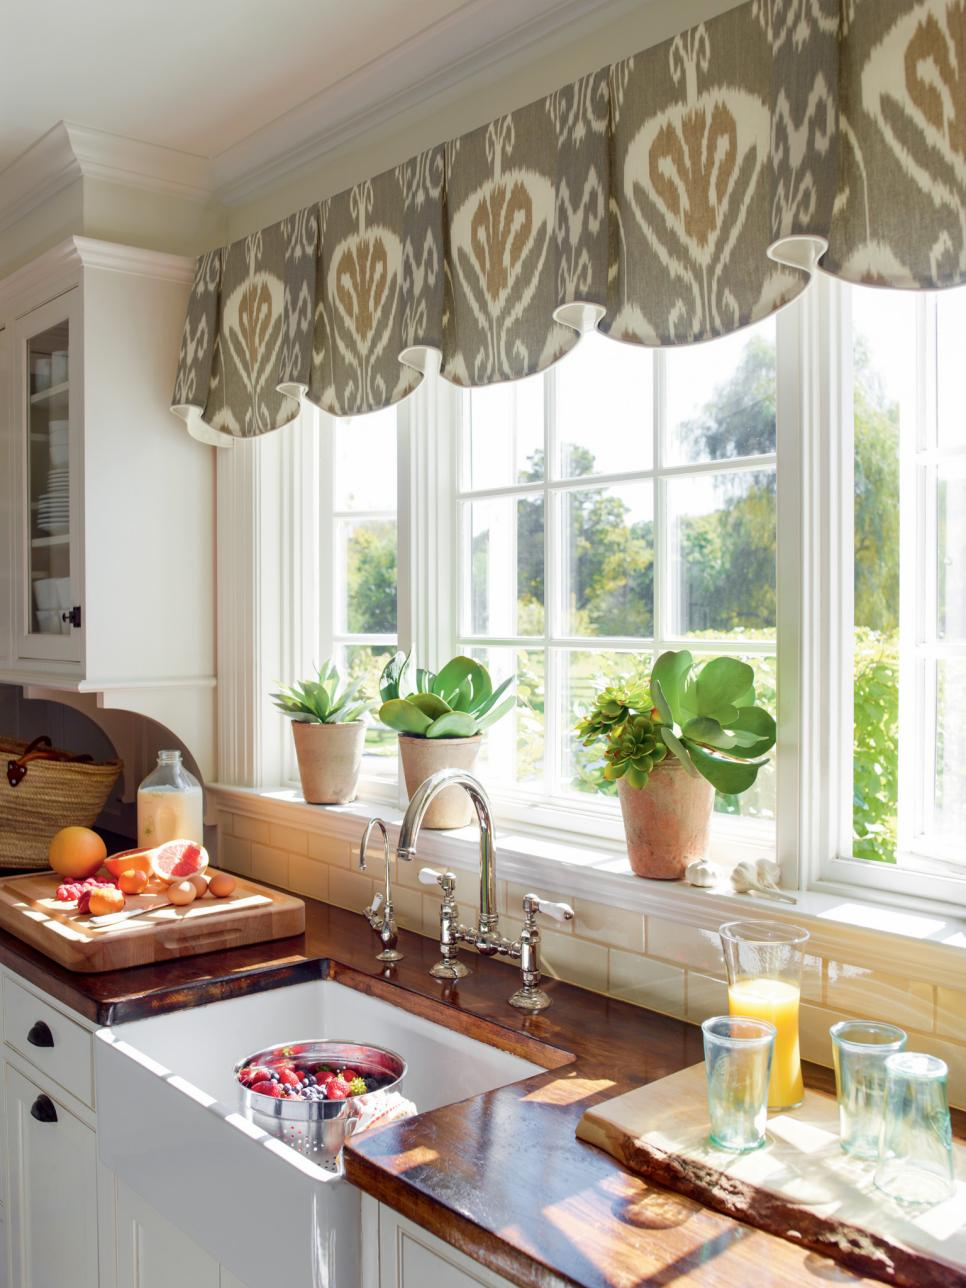 Best Curtain Design for Kitchen Window